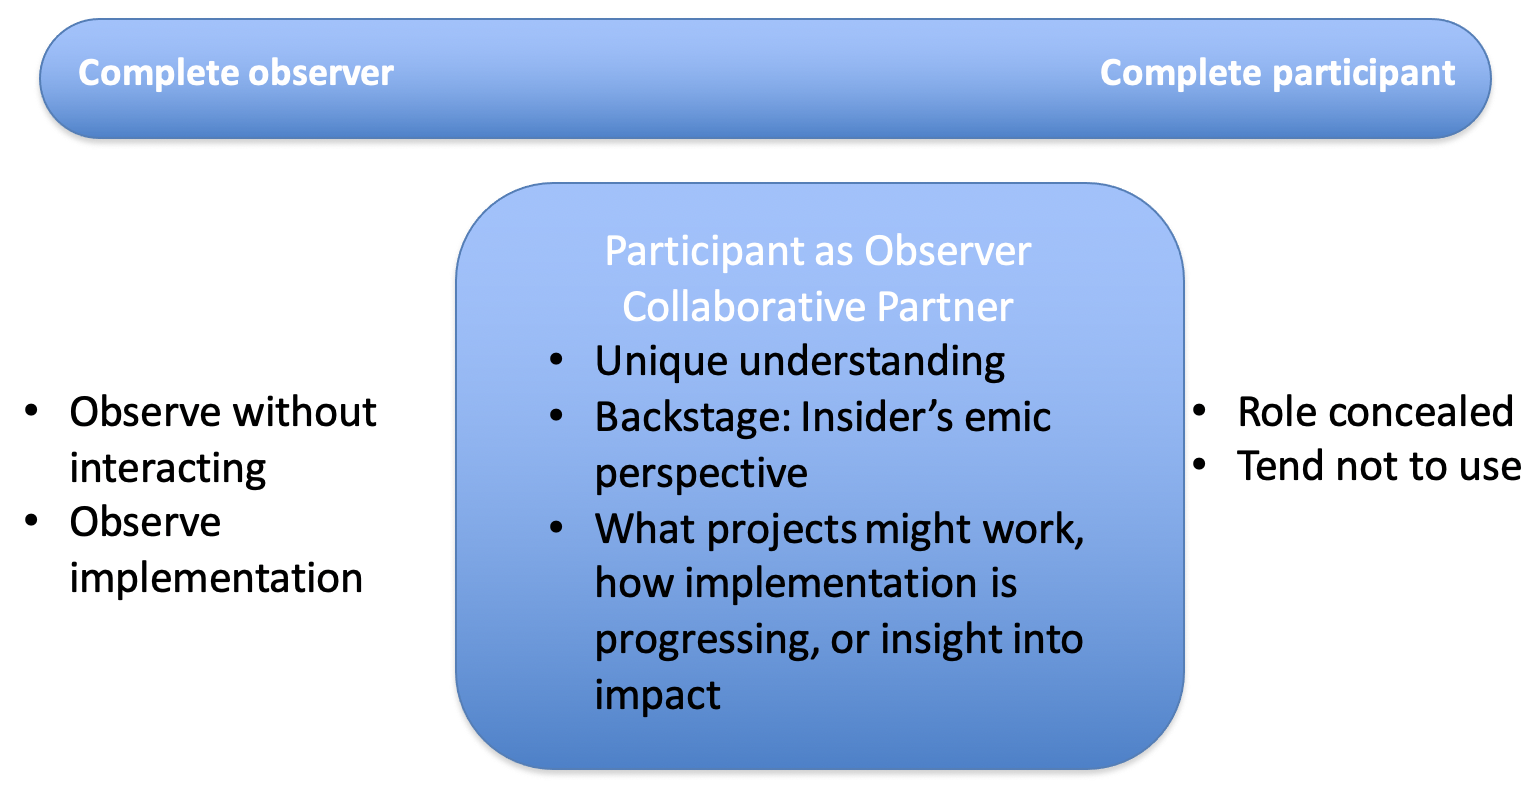 """Diagram of """"complete observer"""" on left and """"complete participant"""" on right with """"participant as observer collaborative partner in the center"""""""